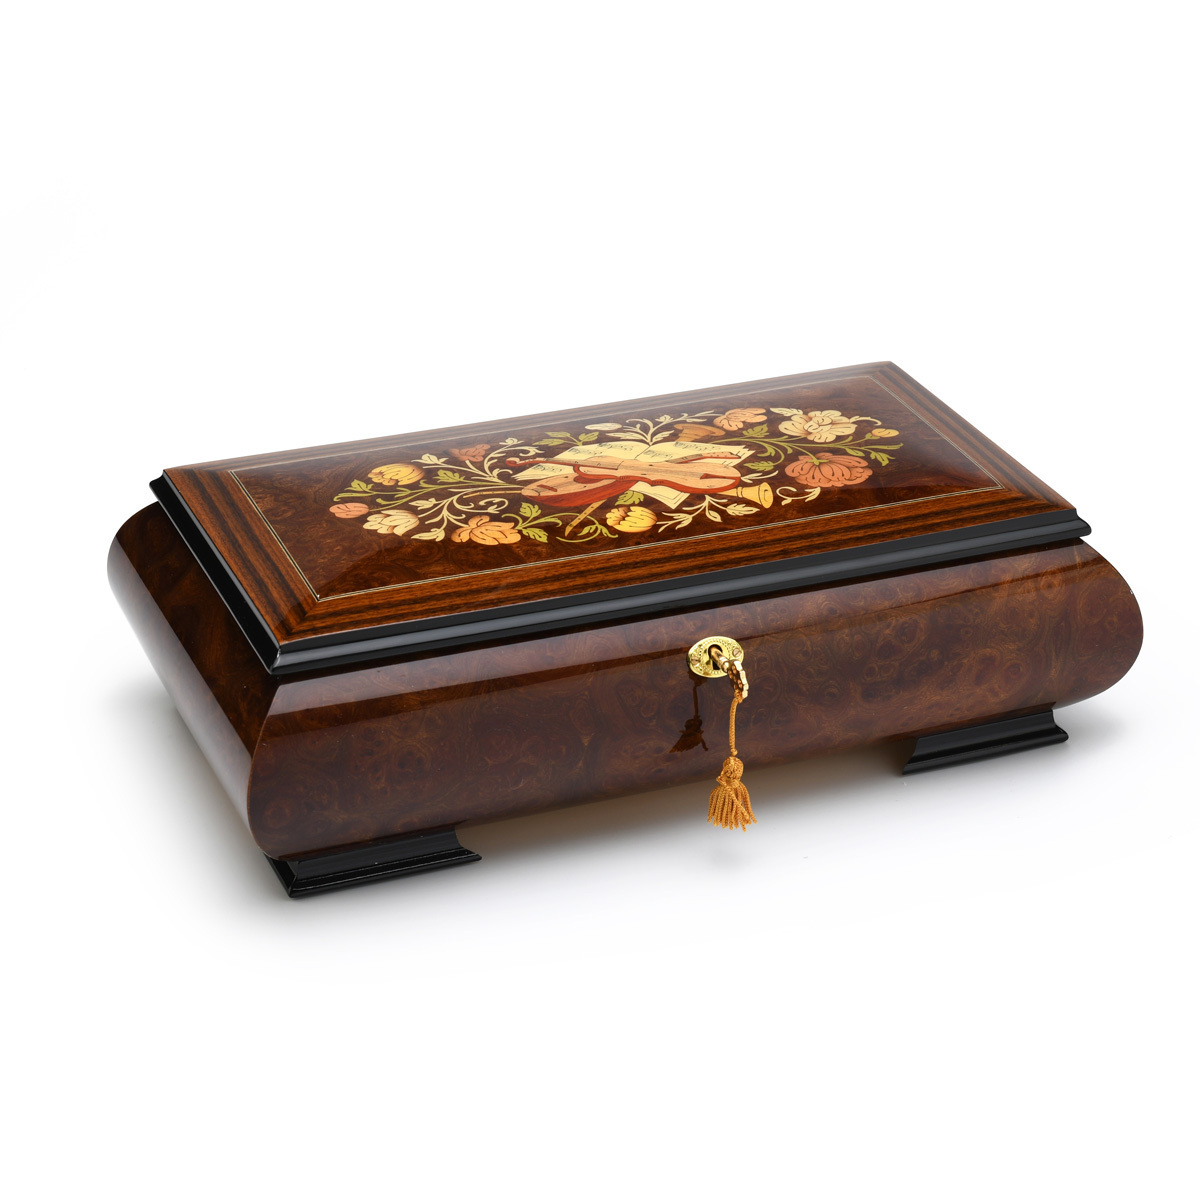 Luxurious 36 Note Grand Musical Instrument and Floral Music Jewelry Box with Lift Up Tray